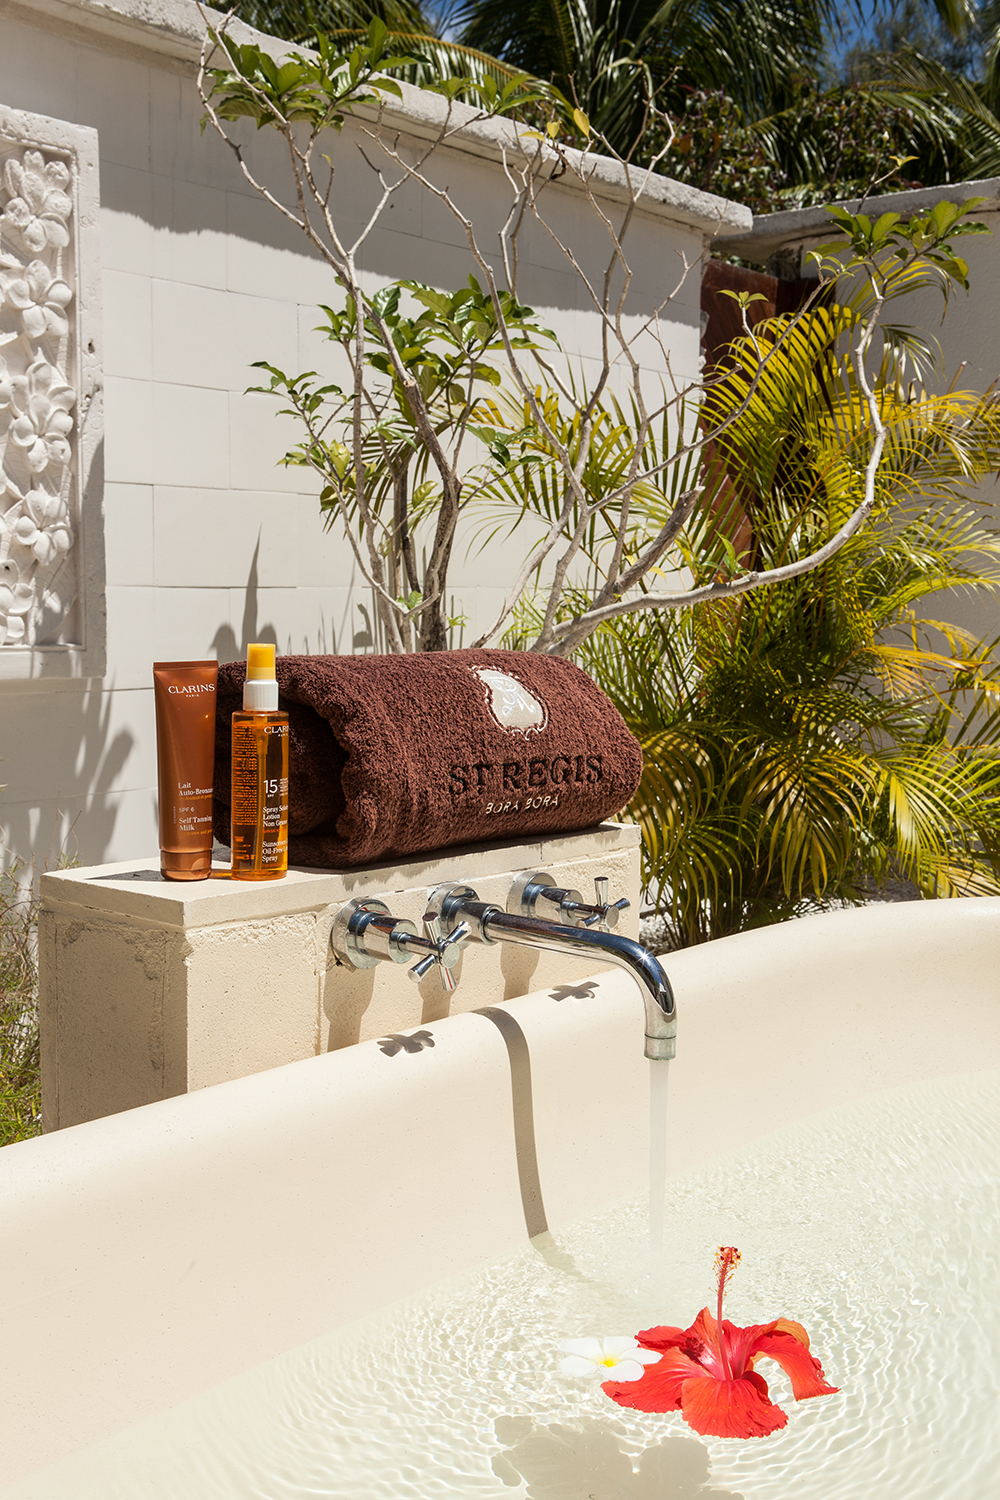 The Spa also offers relaxing water therapy treatments in the form of an essential-oil scented bath and open-air Vichy showers.